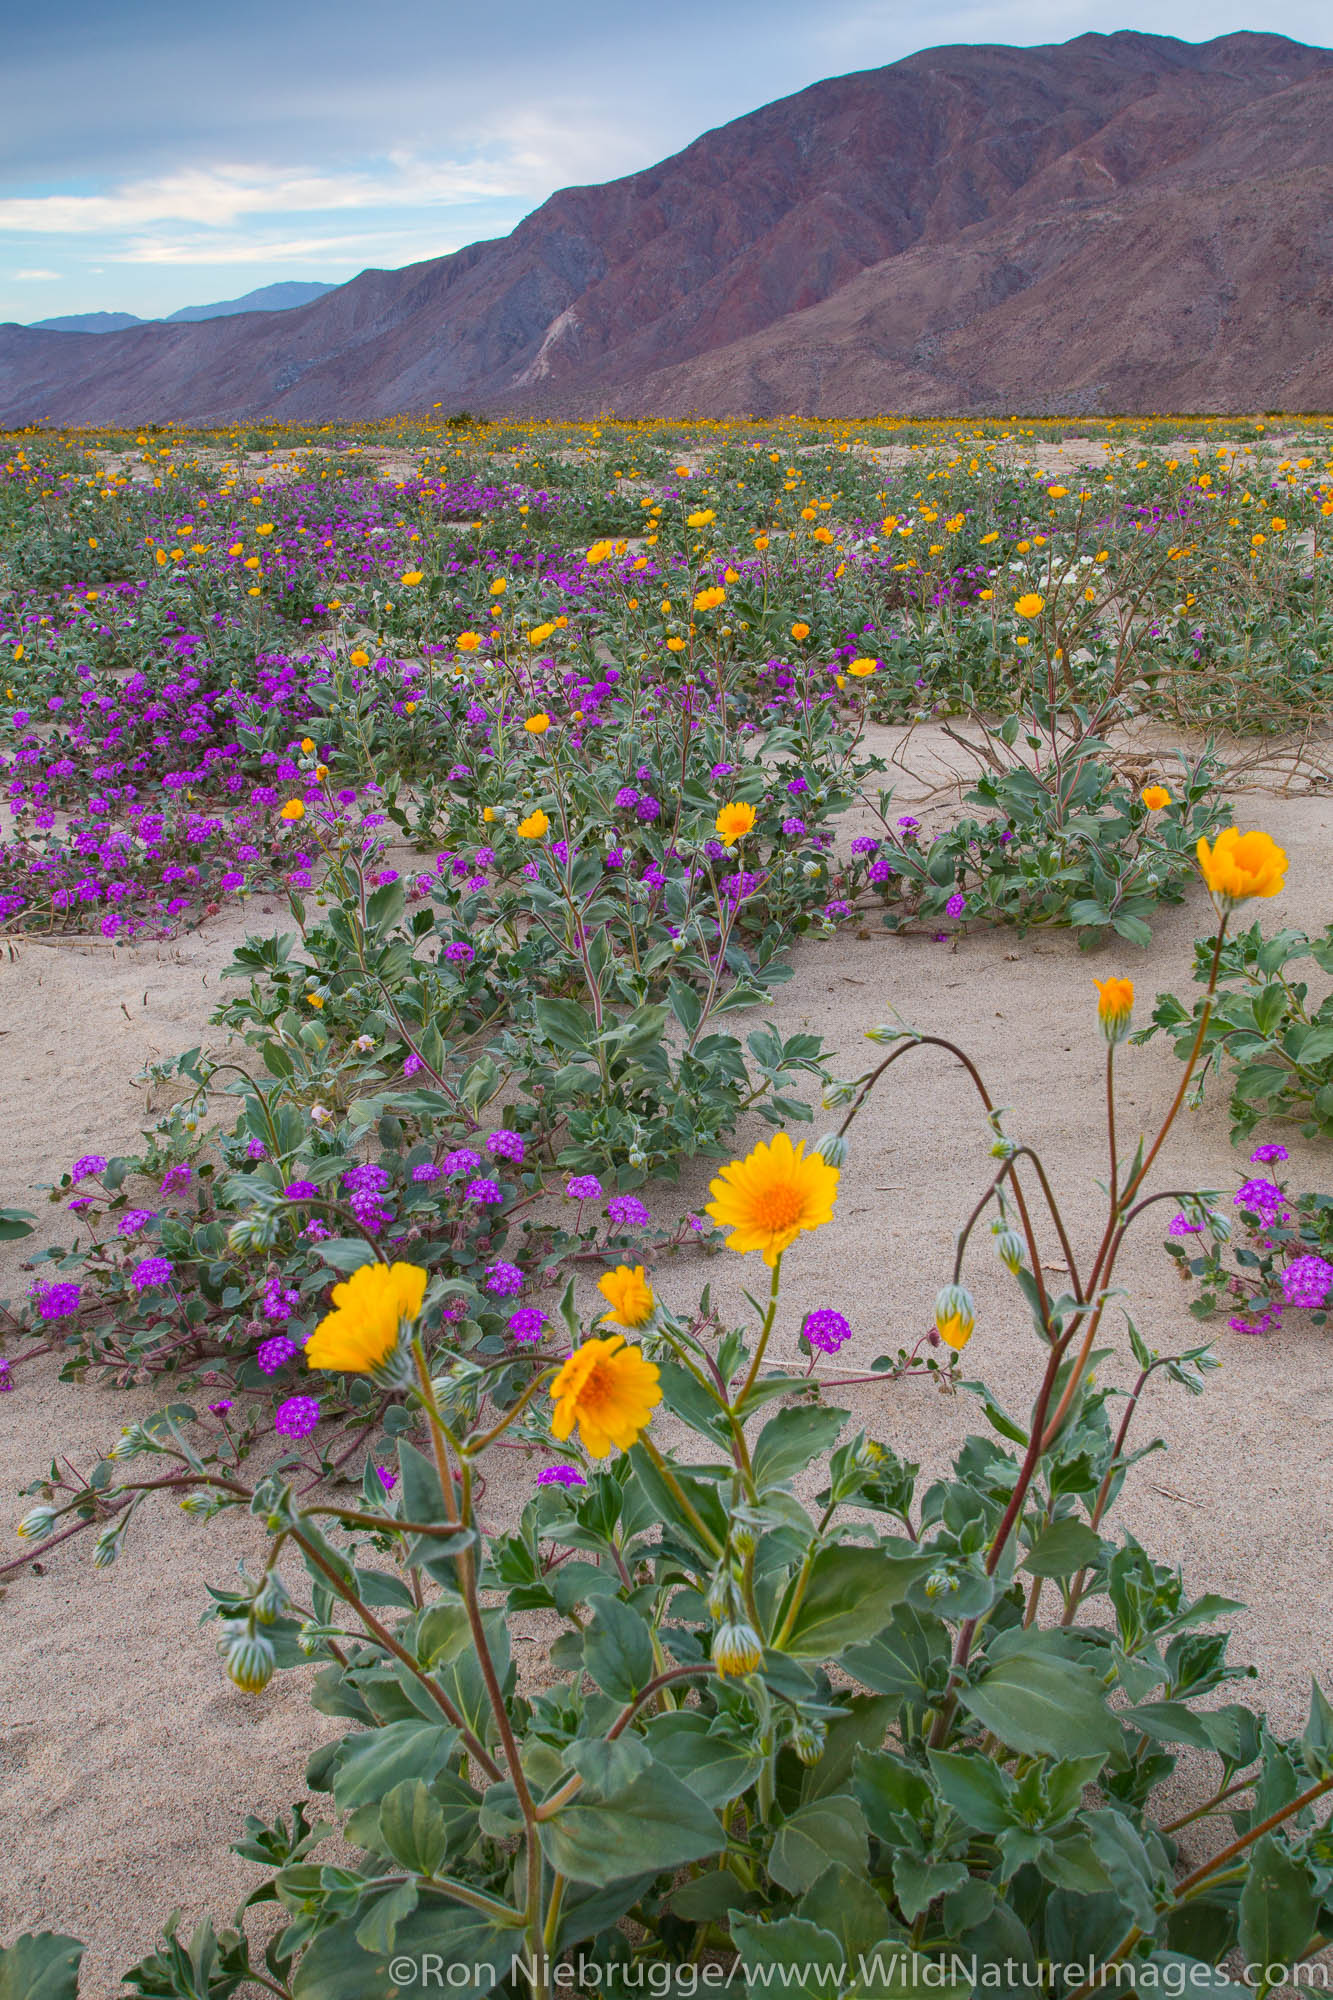 Fields of wildflowers bloom in Anza-Borrego Desert State Park, California.